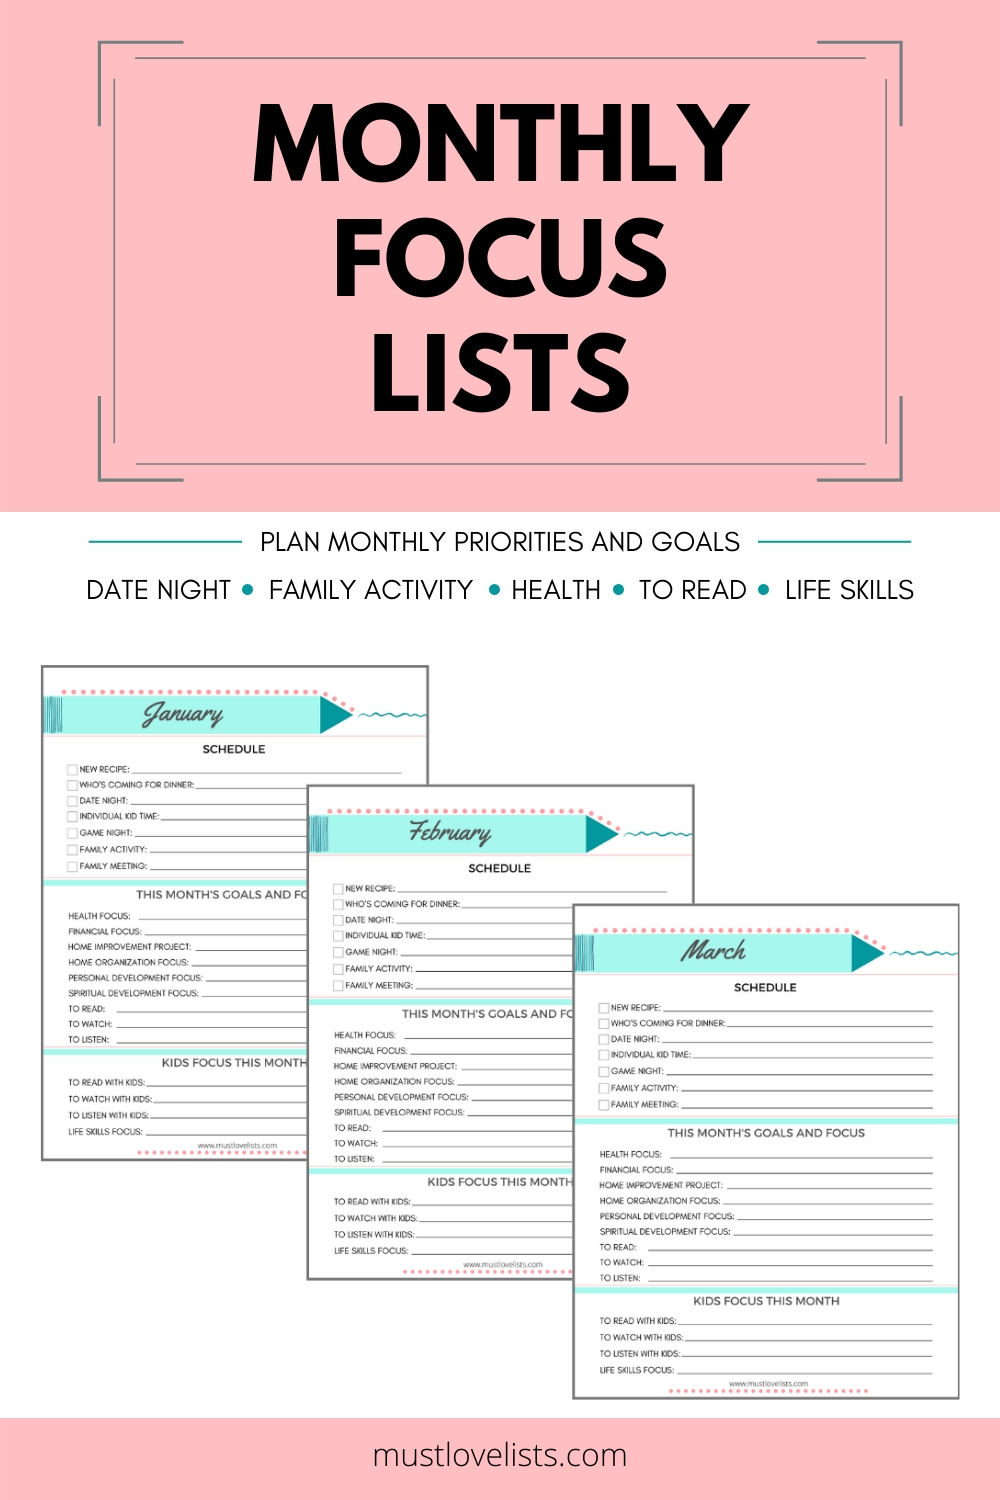 Monthly Focus Lists Goal List Monthly Schedule Monthly